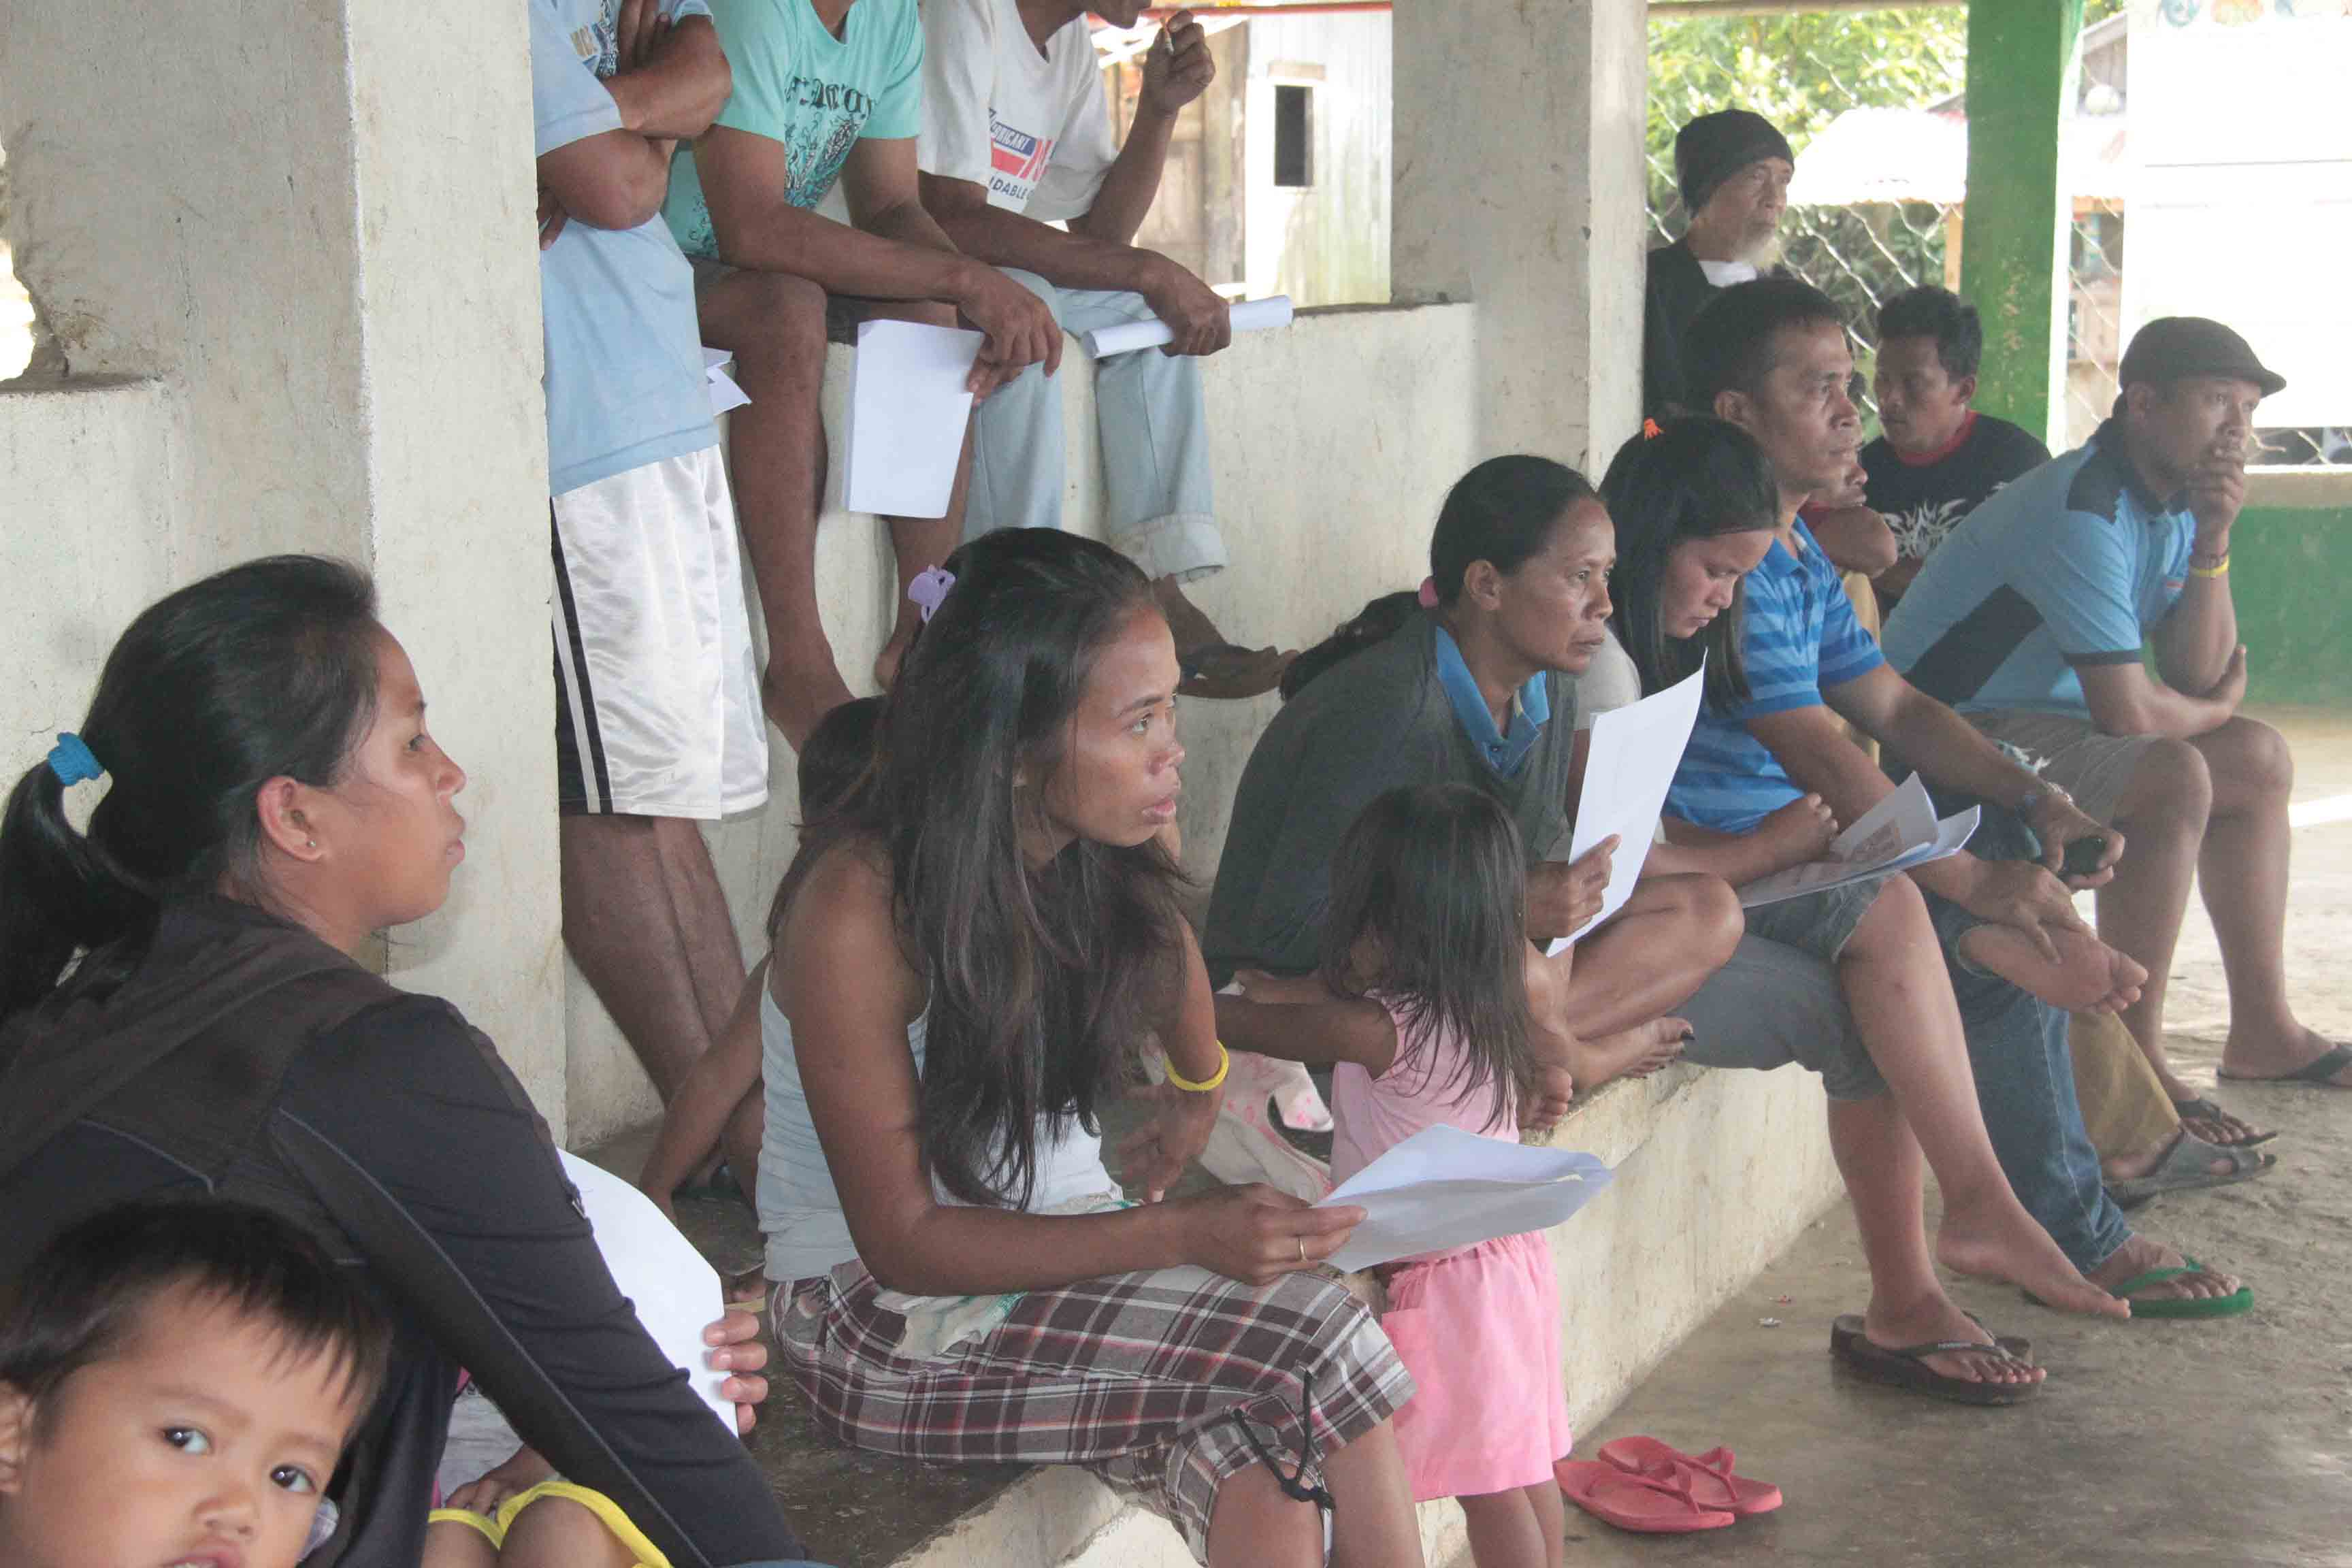 thephotos/2016/Community Dialogue (Small Potongan)(June 14, 2016)/IMG_3032.jpg